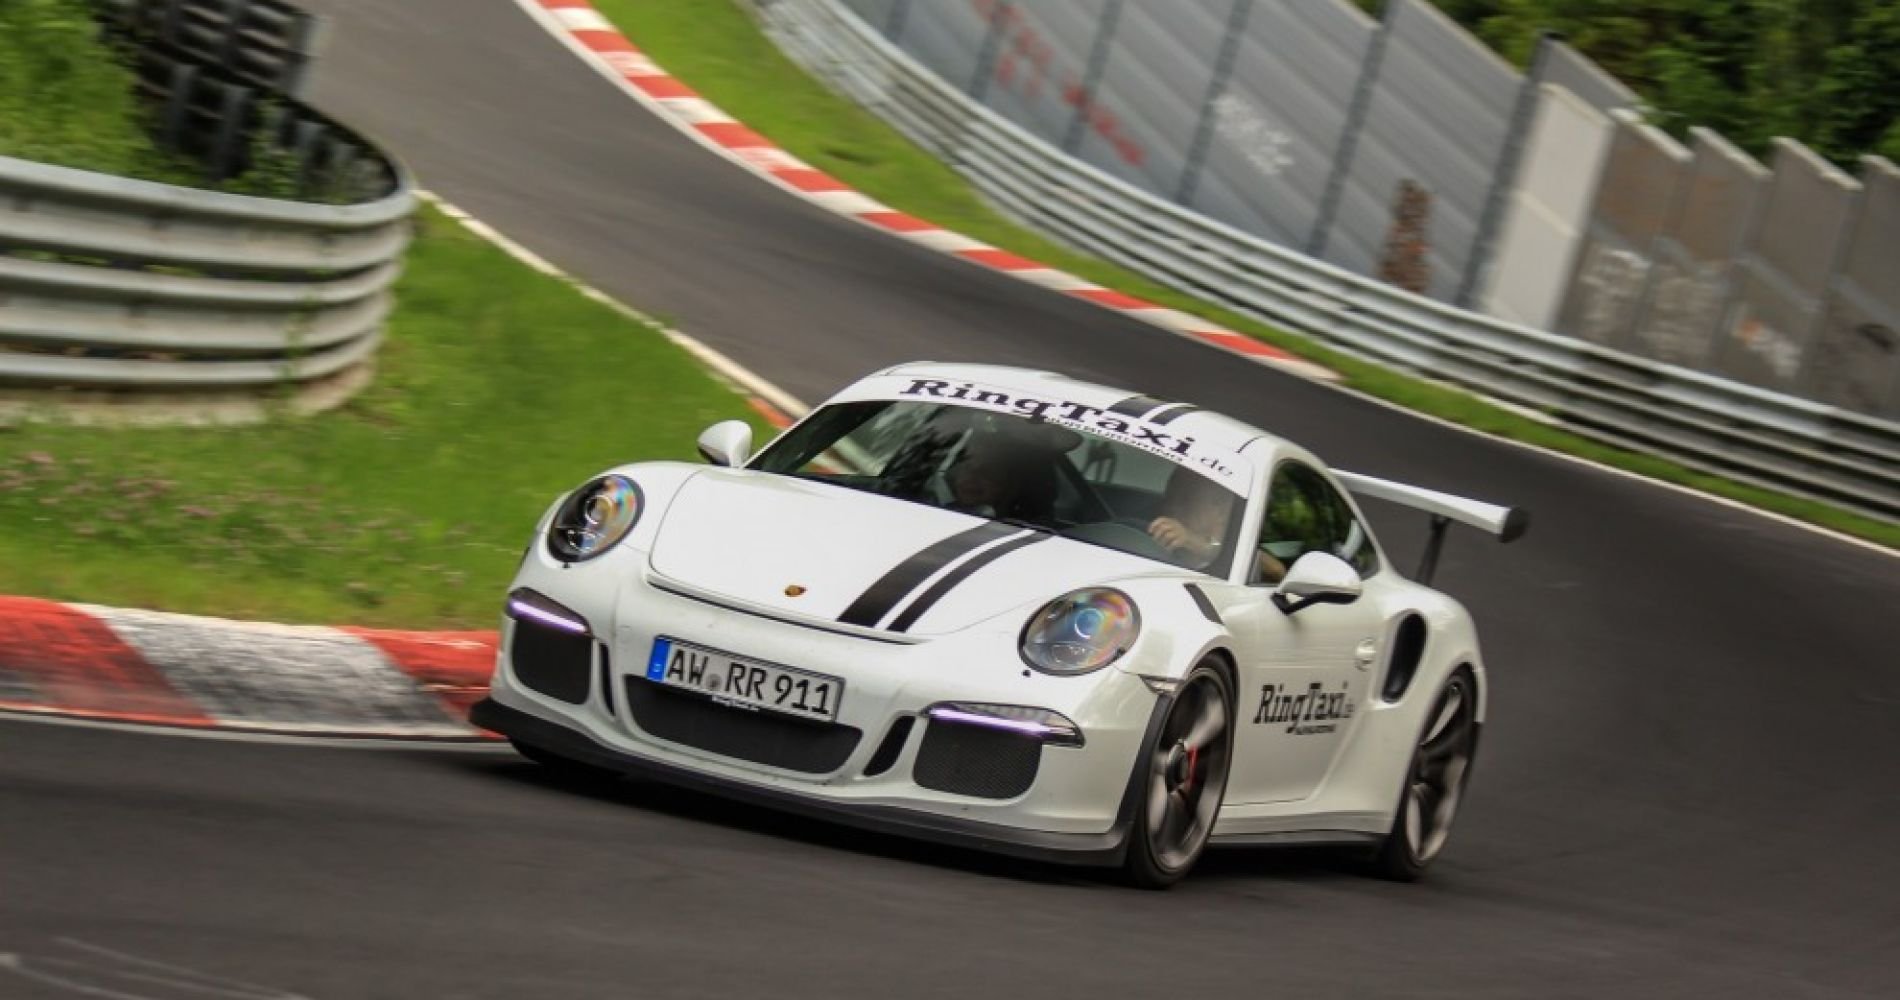 Drive yourself around the Nürburgring with Porsche 911 GT3 RS 991